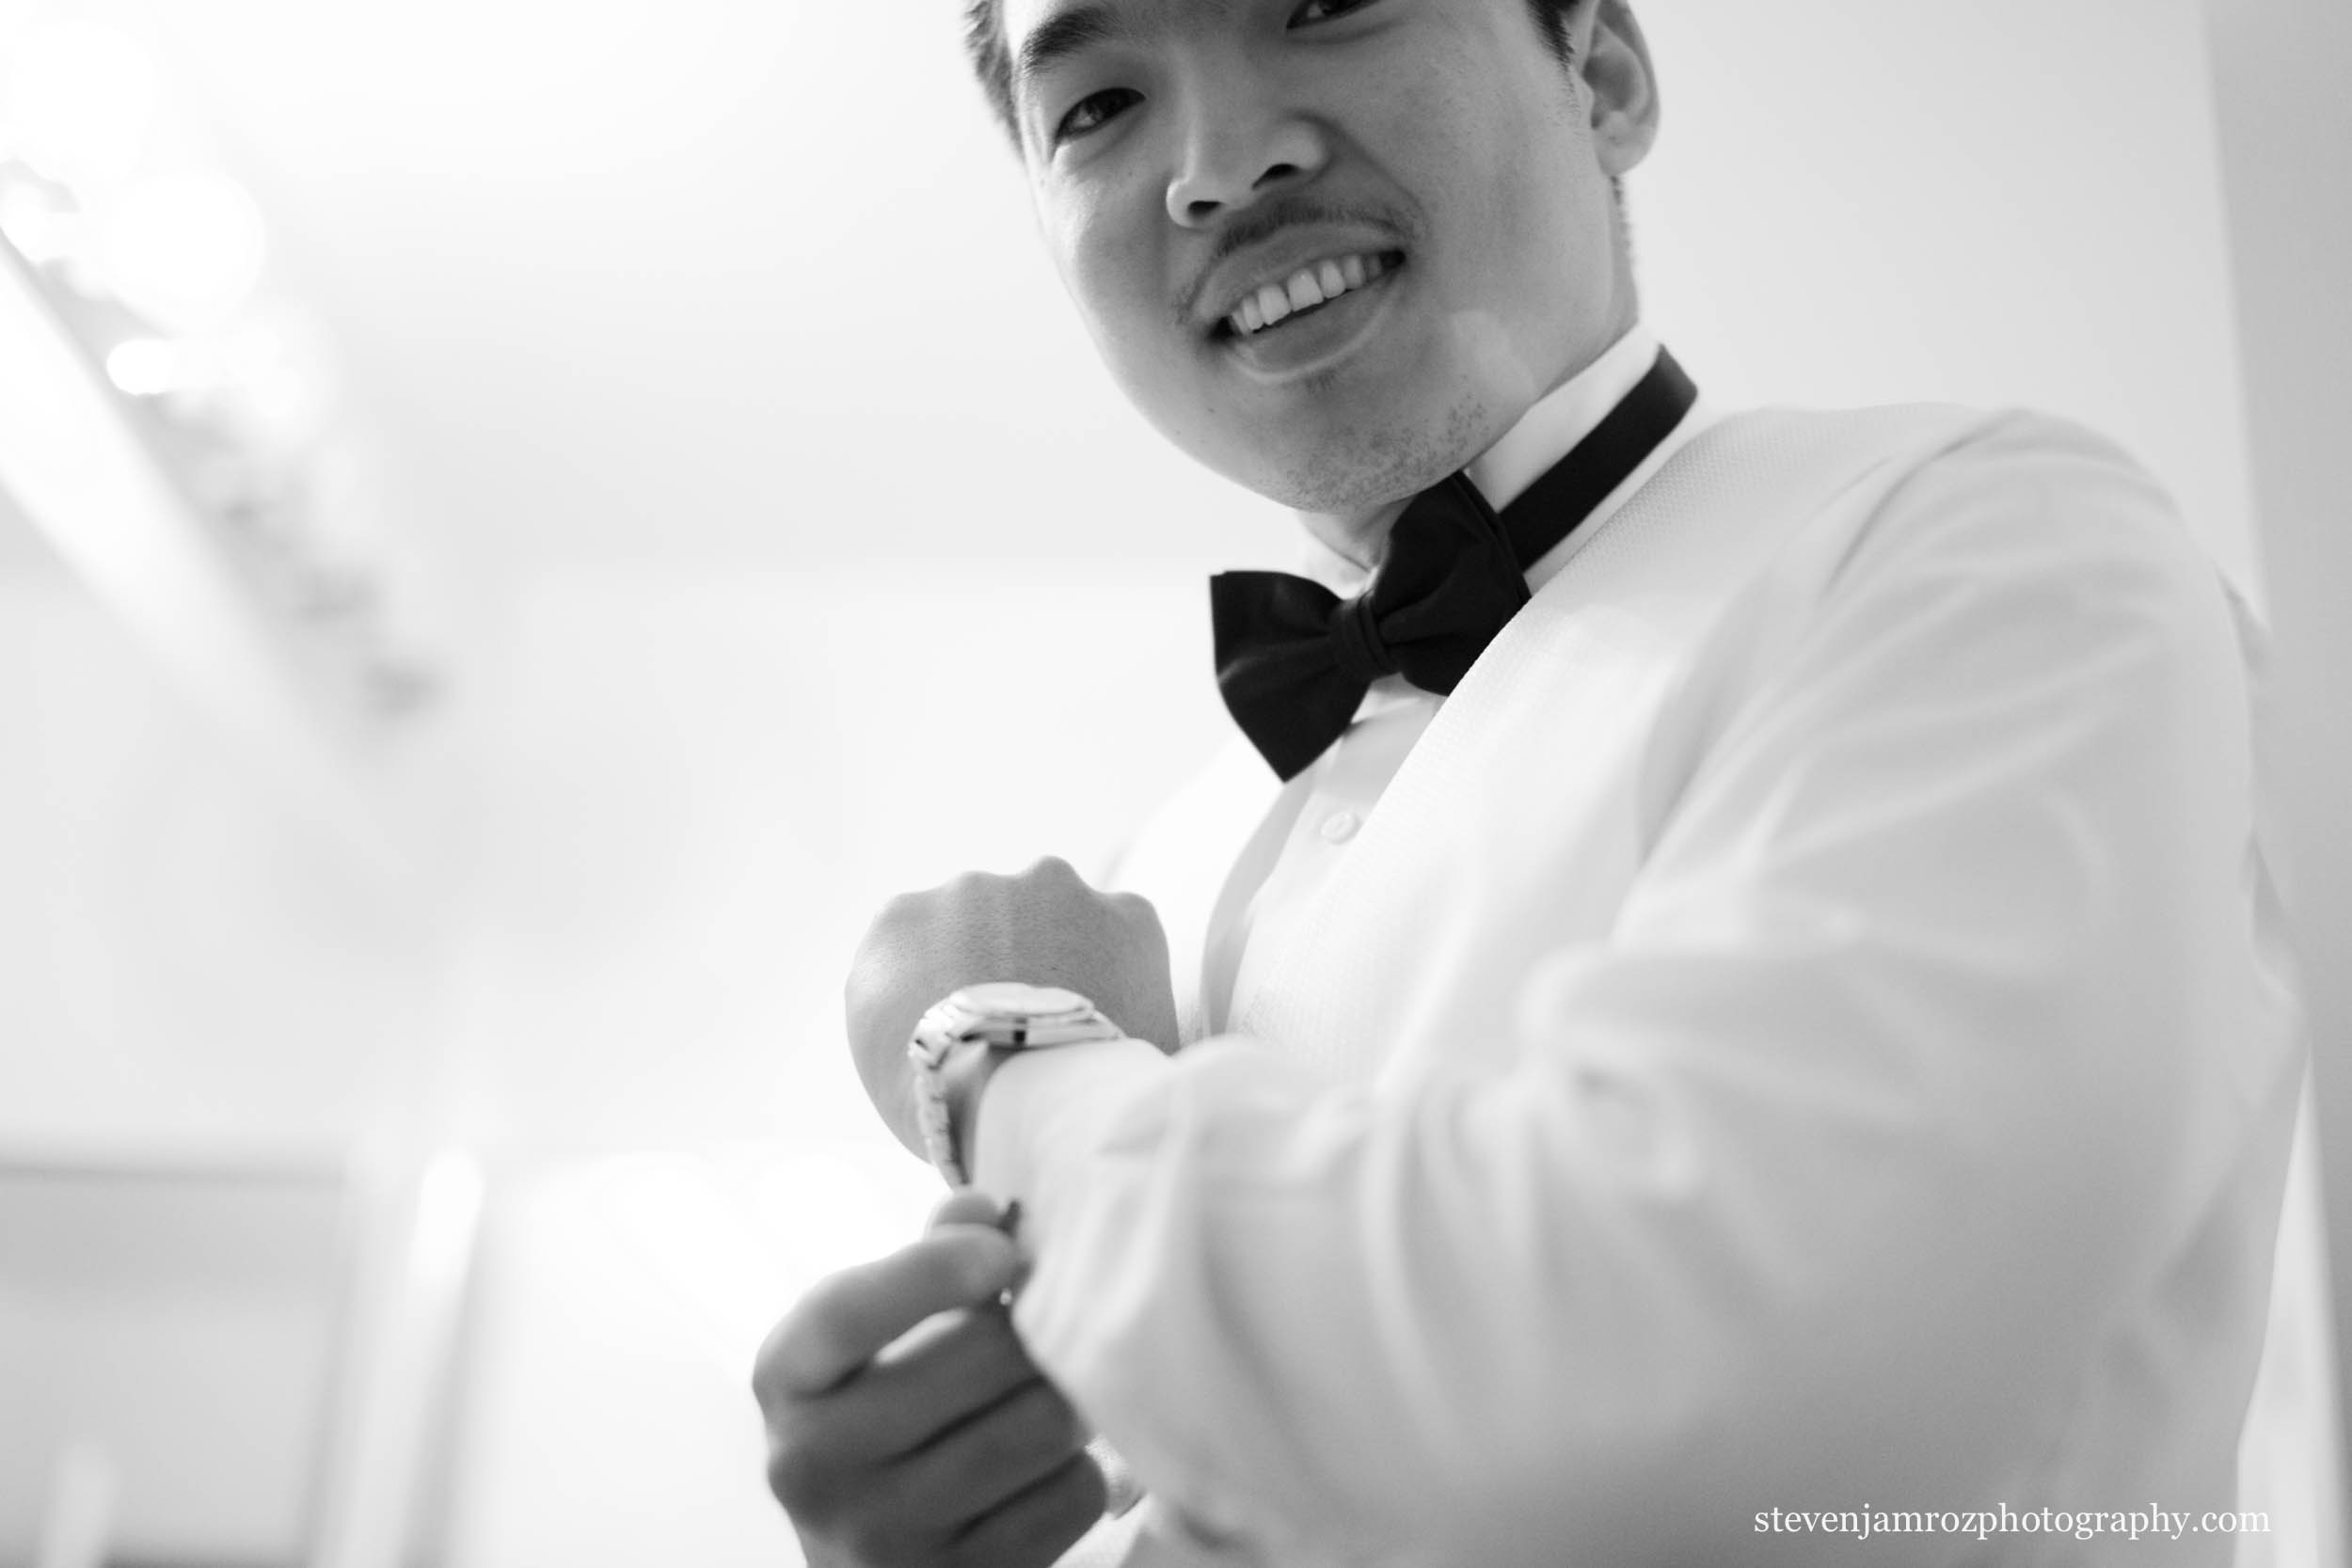 rcufflinks-and-watch-wedding-groomsman-get-ready-0763.jpg